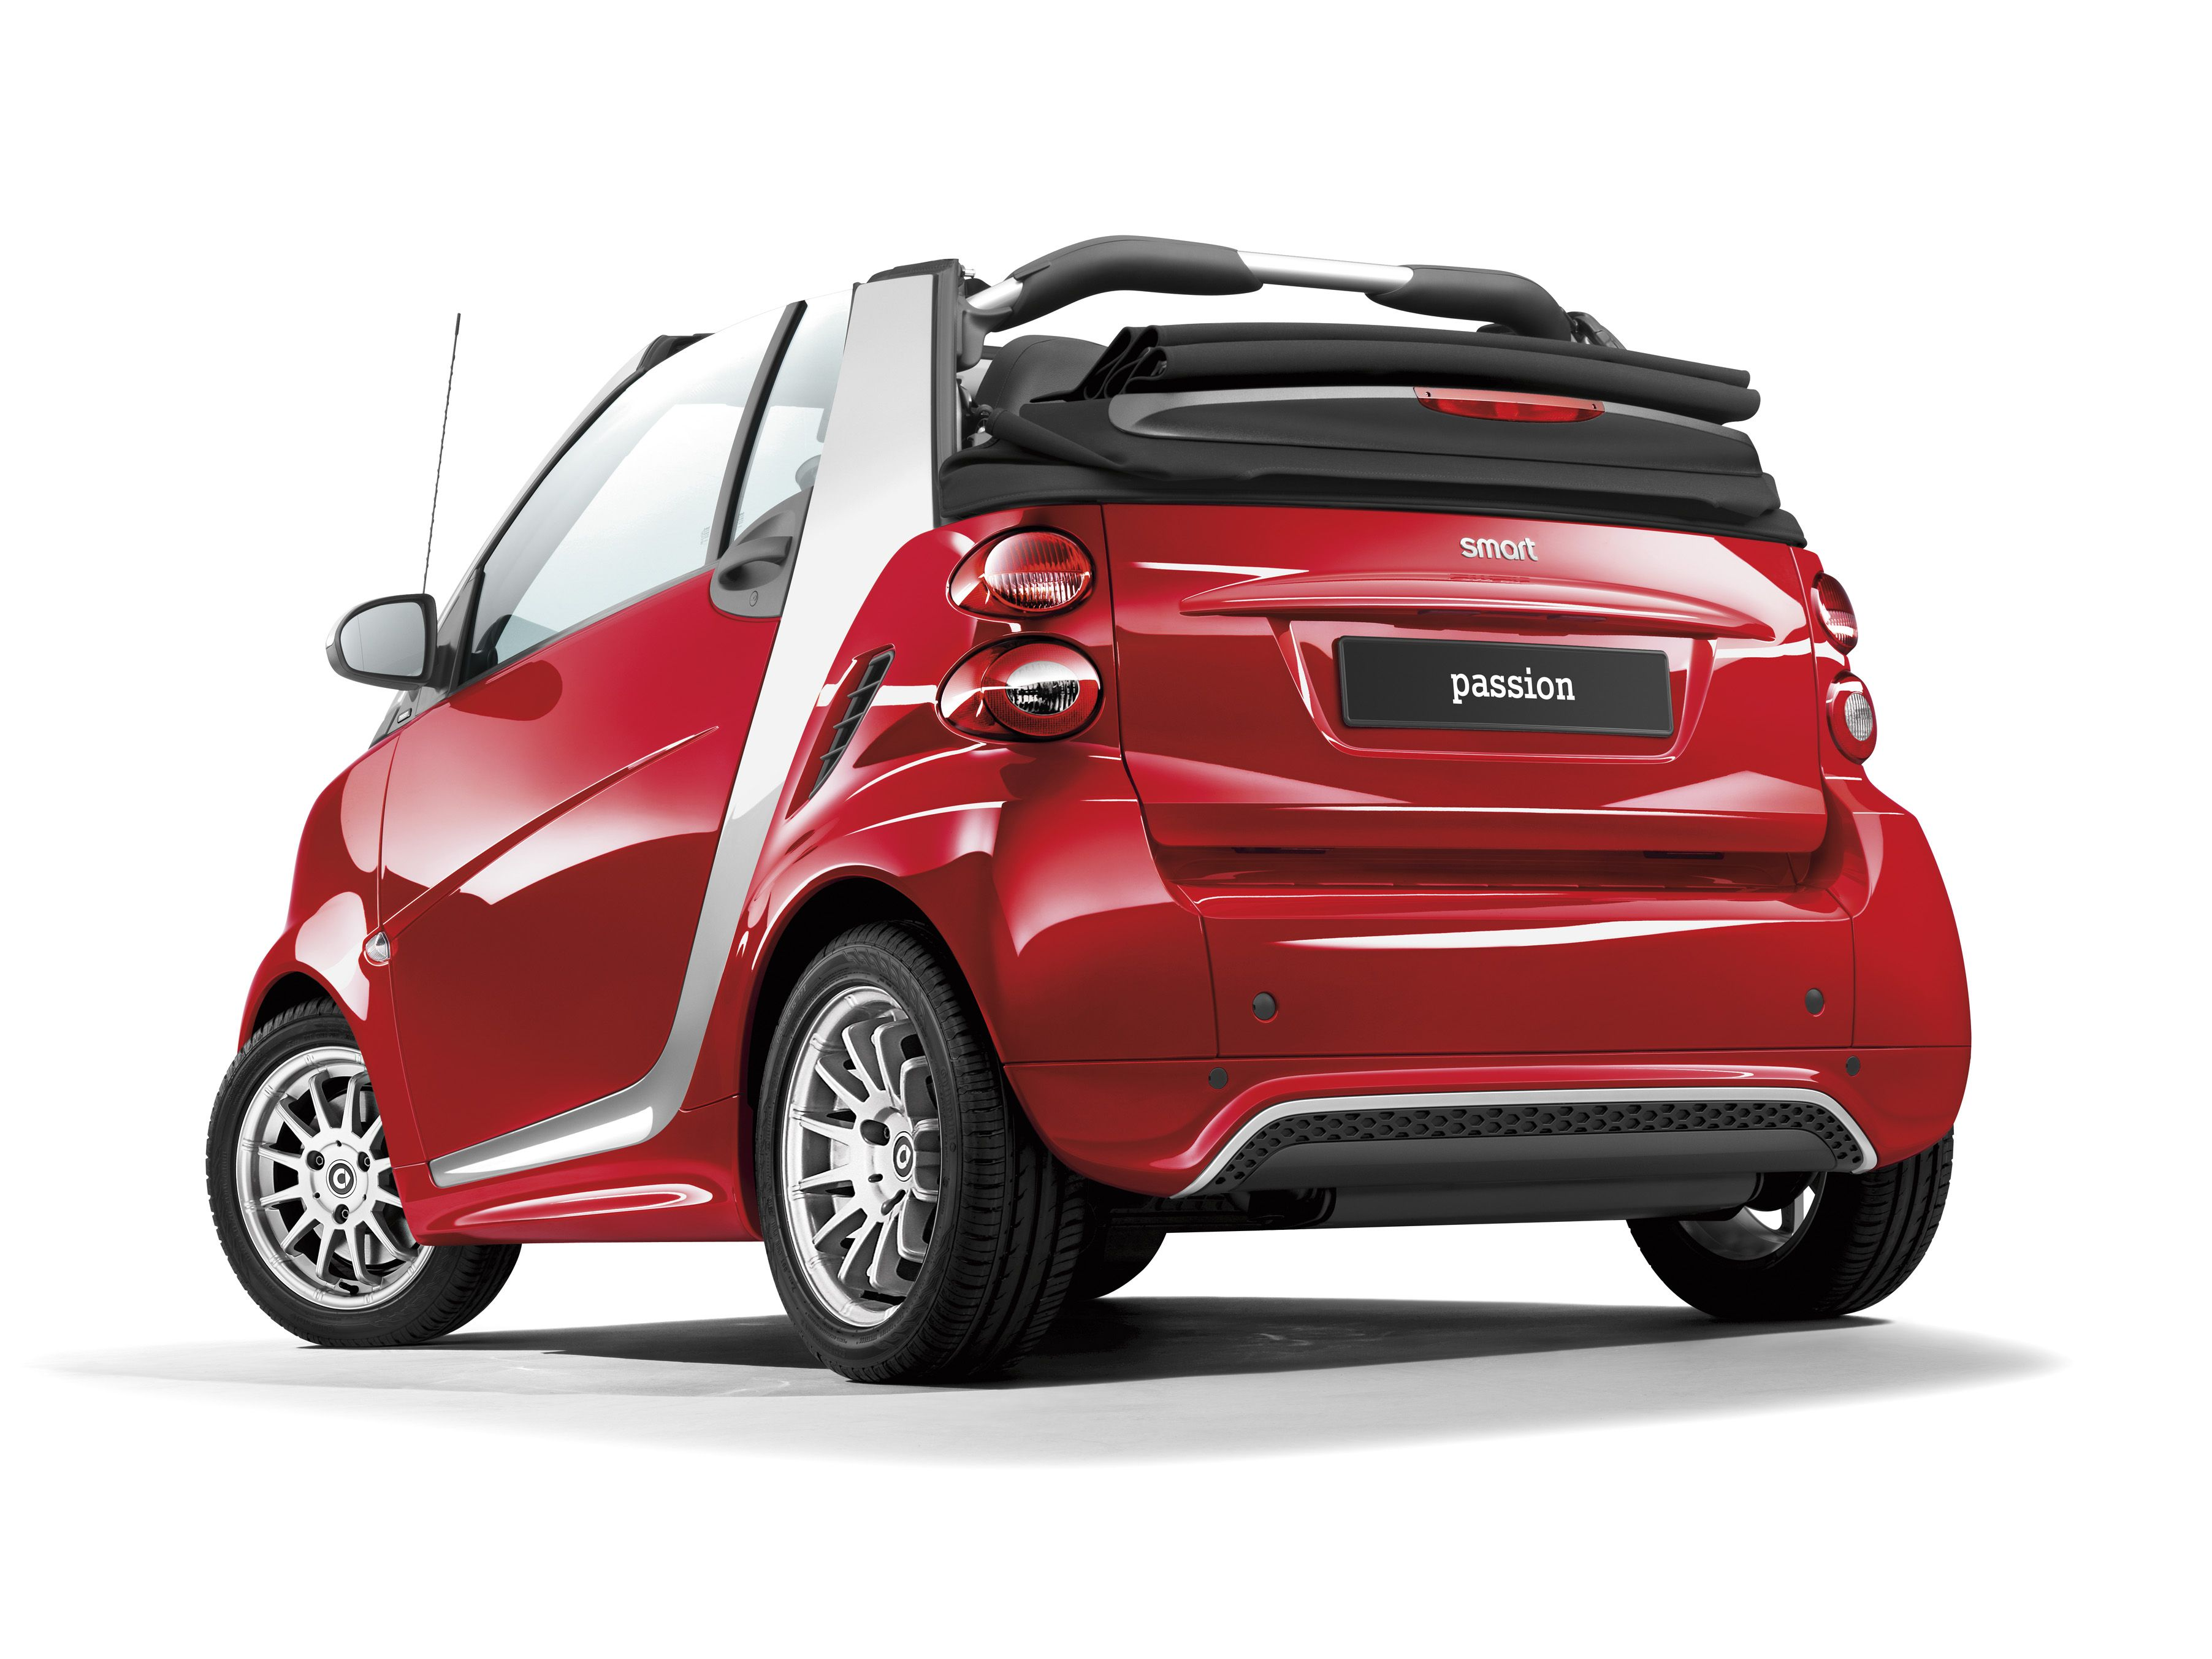 2013 Passion Cabriolet Smart Fortwo Smart Car Cabriolets